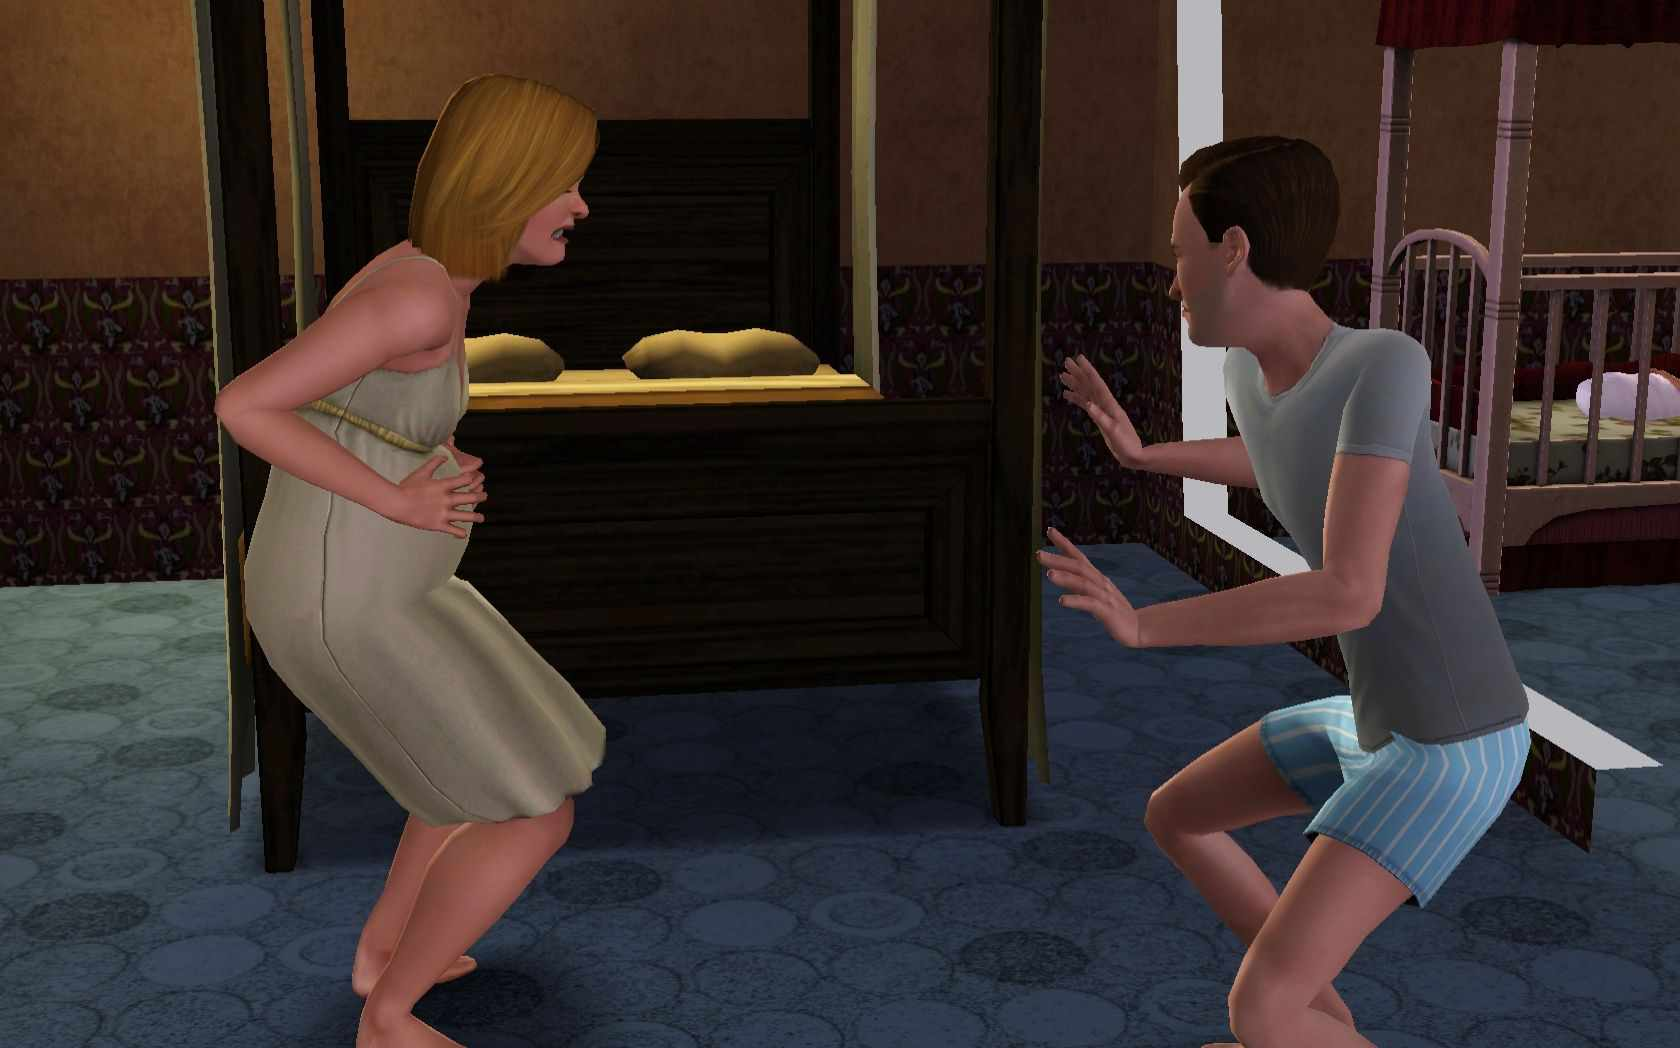 Sims 3 Parenting: A Sim In Contractions